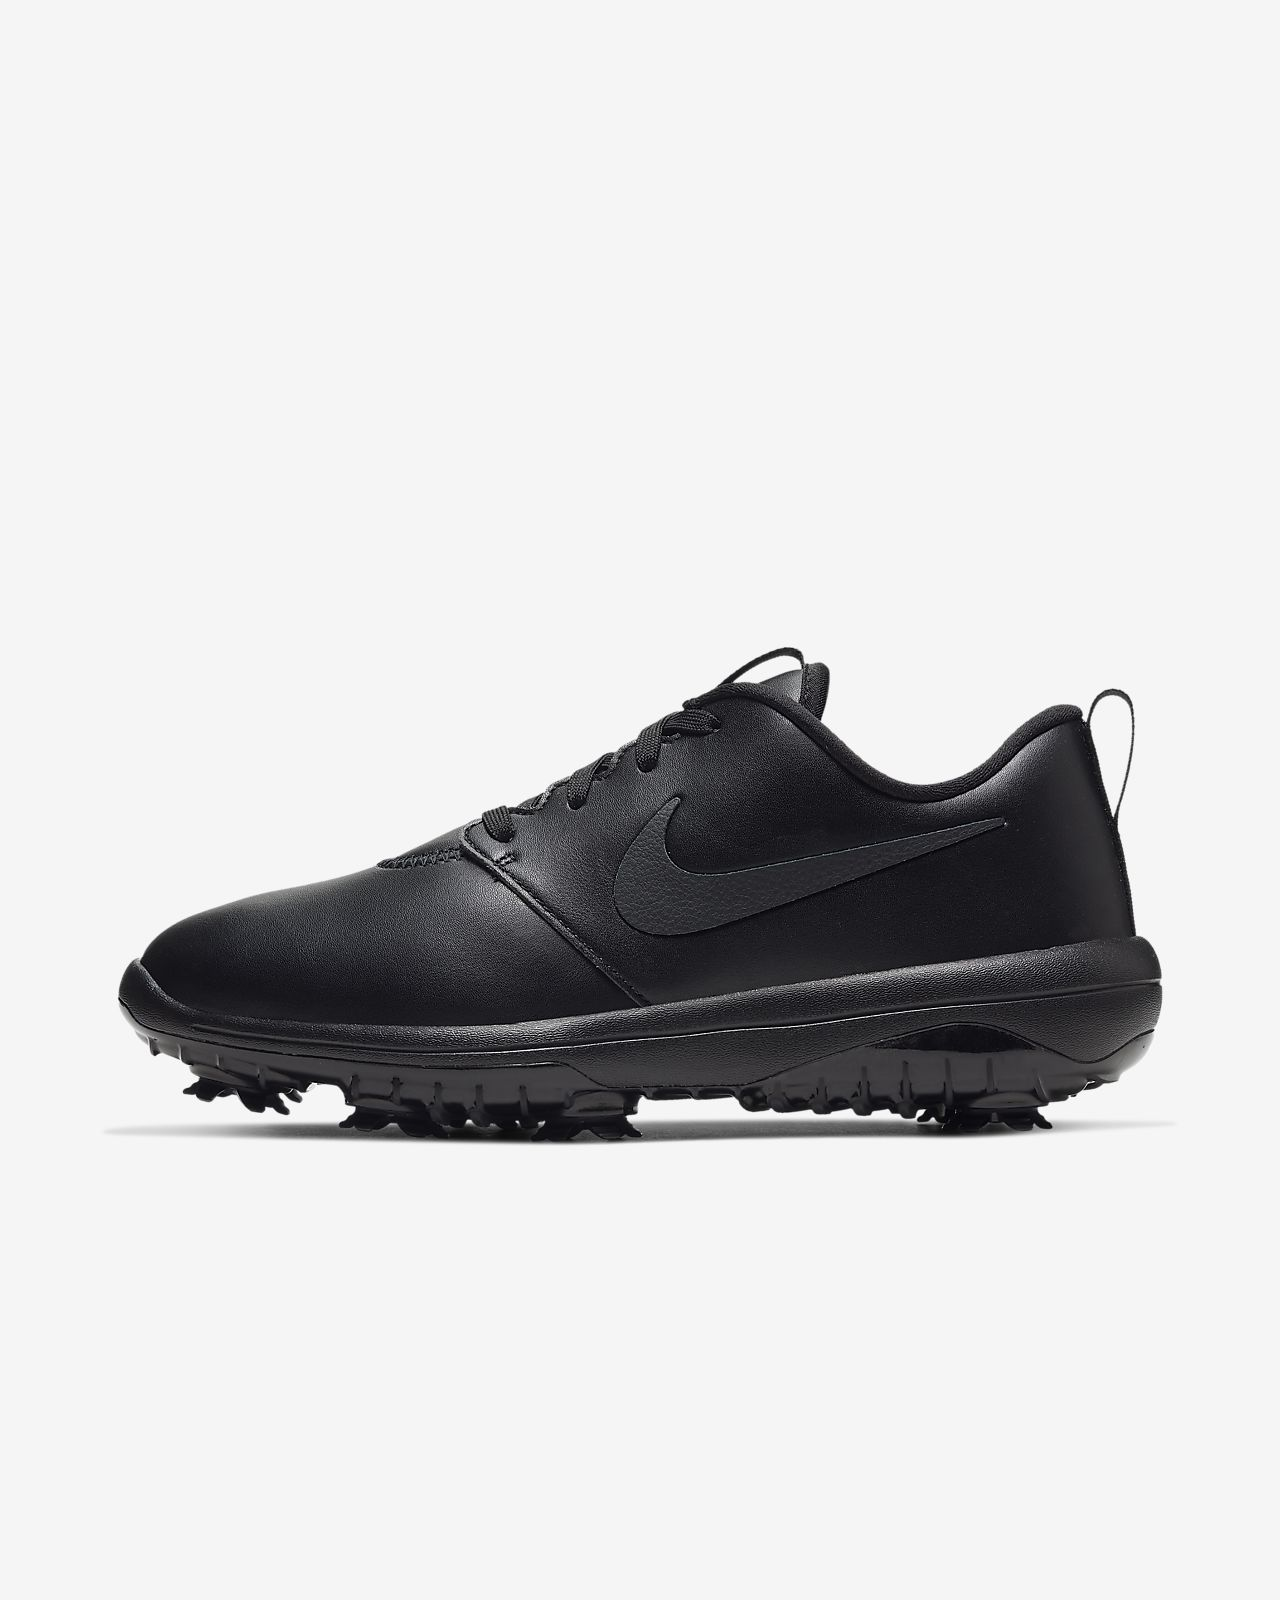 Nike Roshe G Tour Women's Golf Shoe